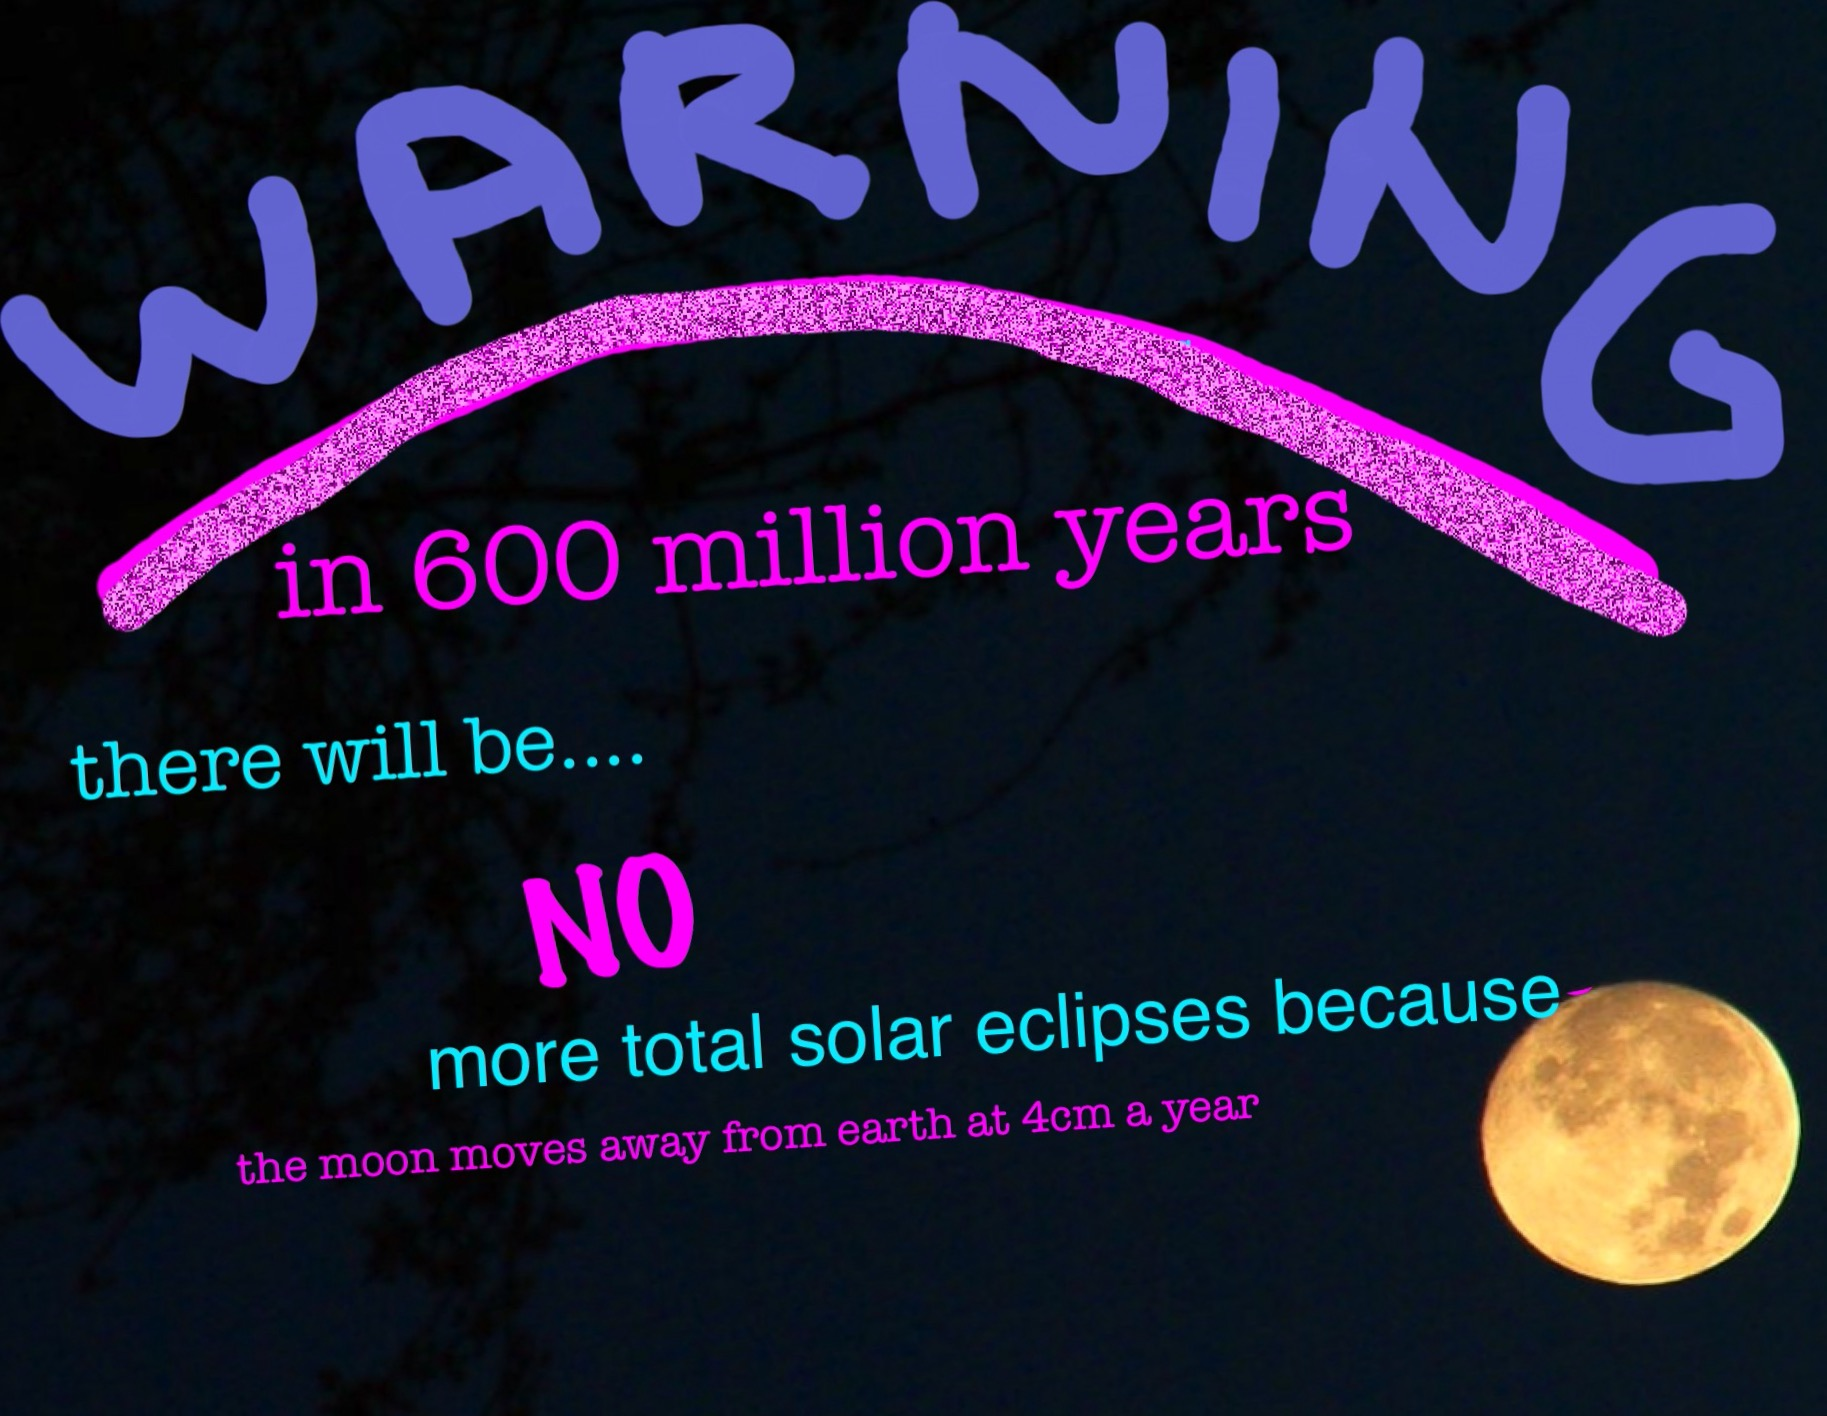 HEED THIS WARNING!!!  DO NOT WAIT UNTIL IT'S TOO LATE!!!!